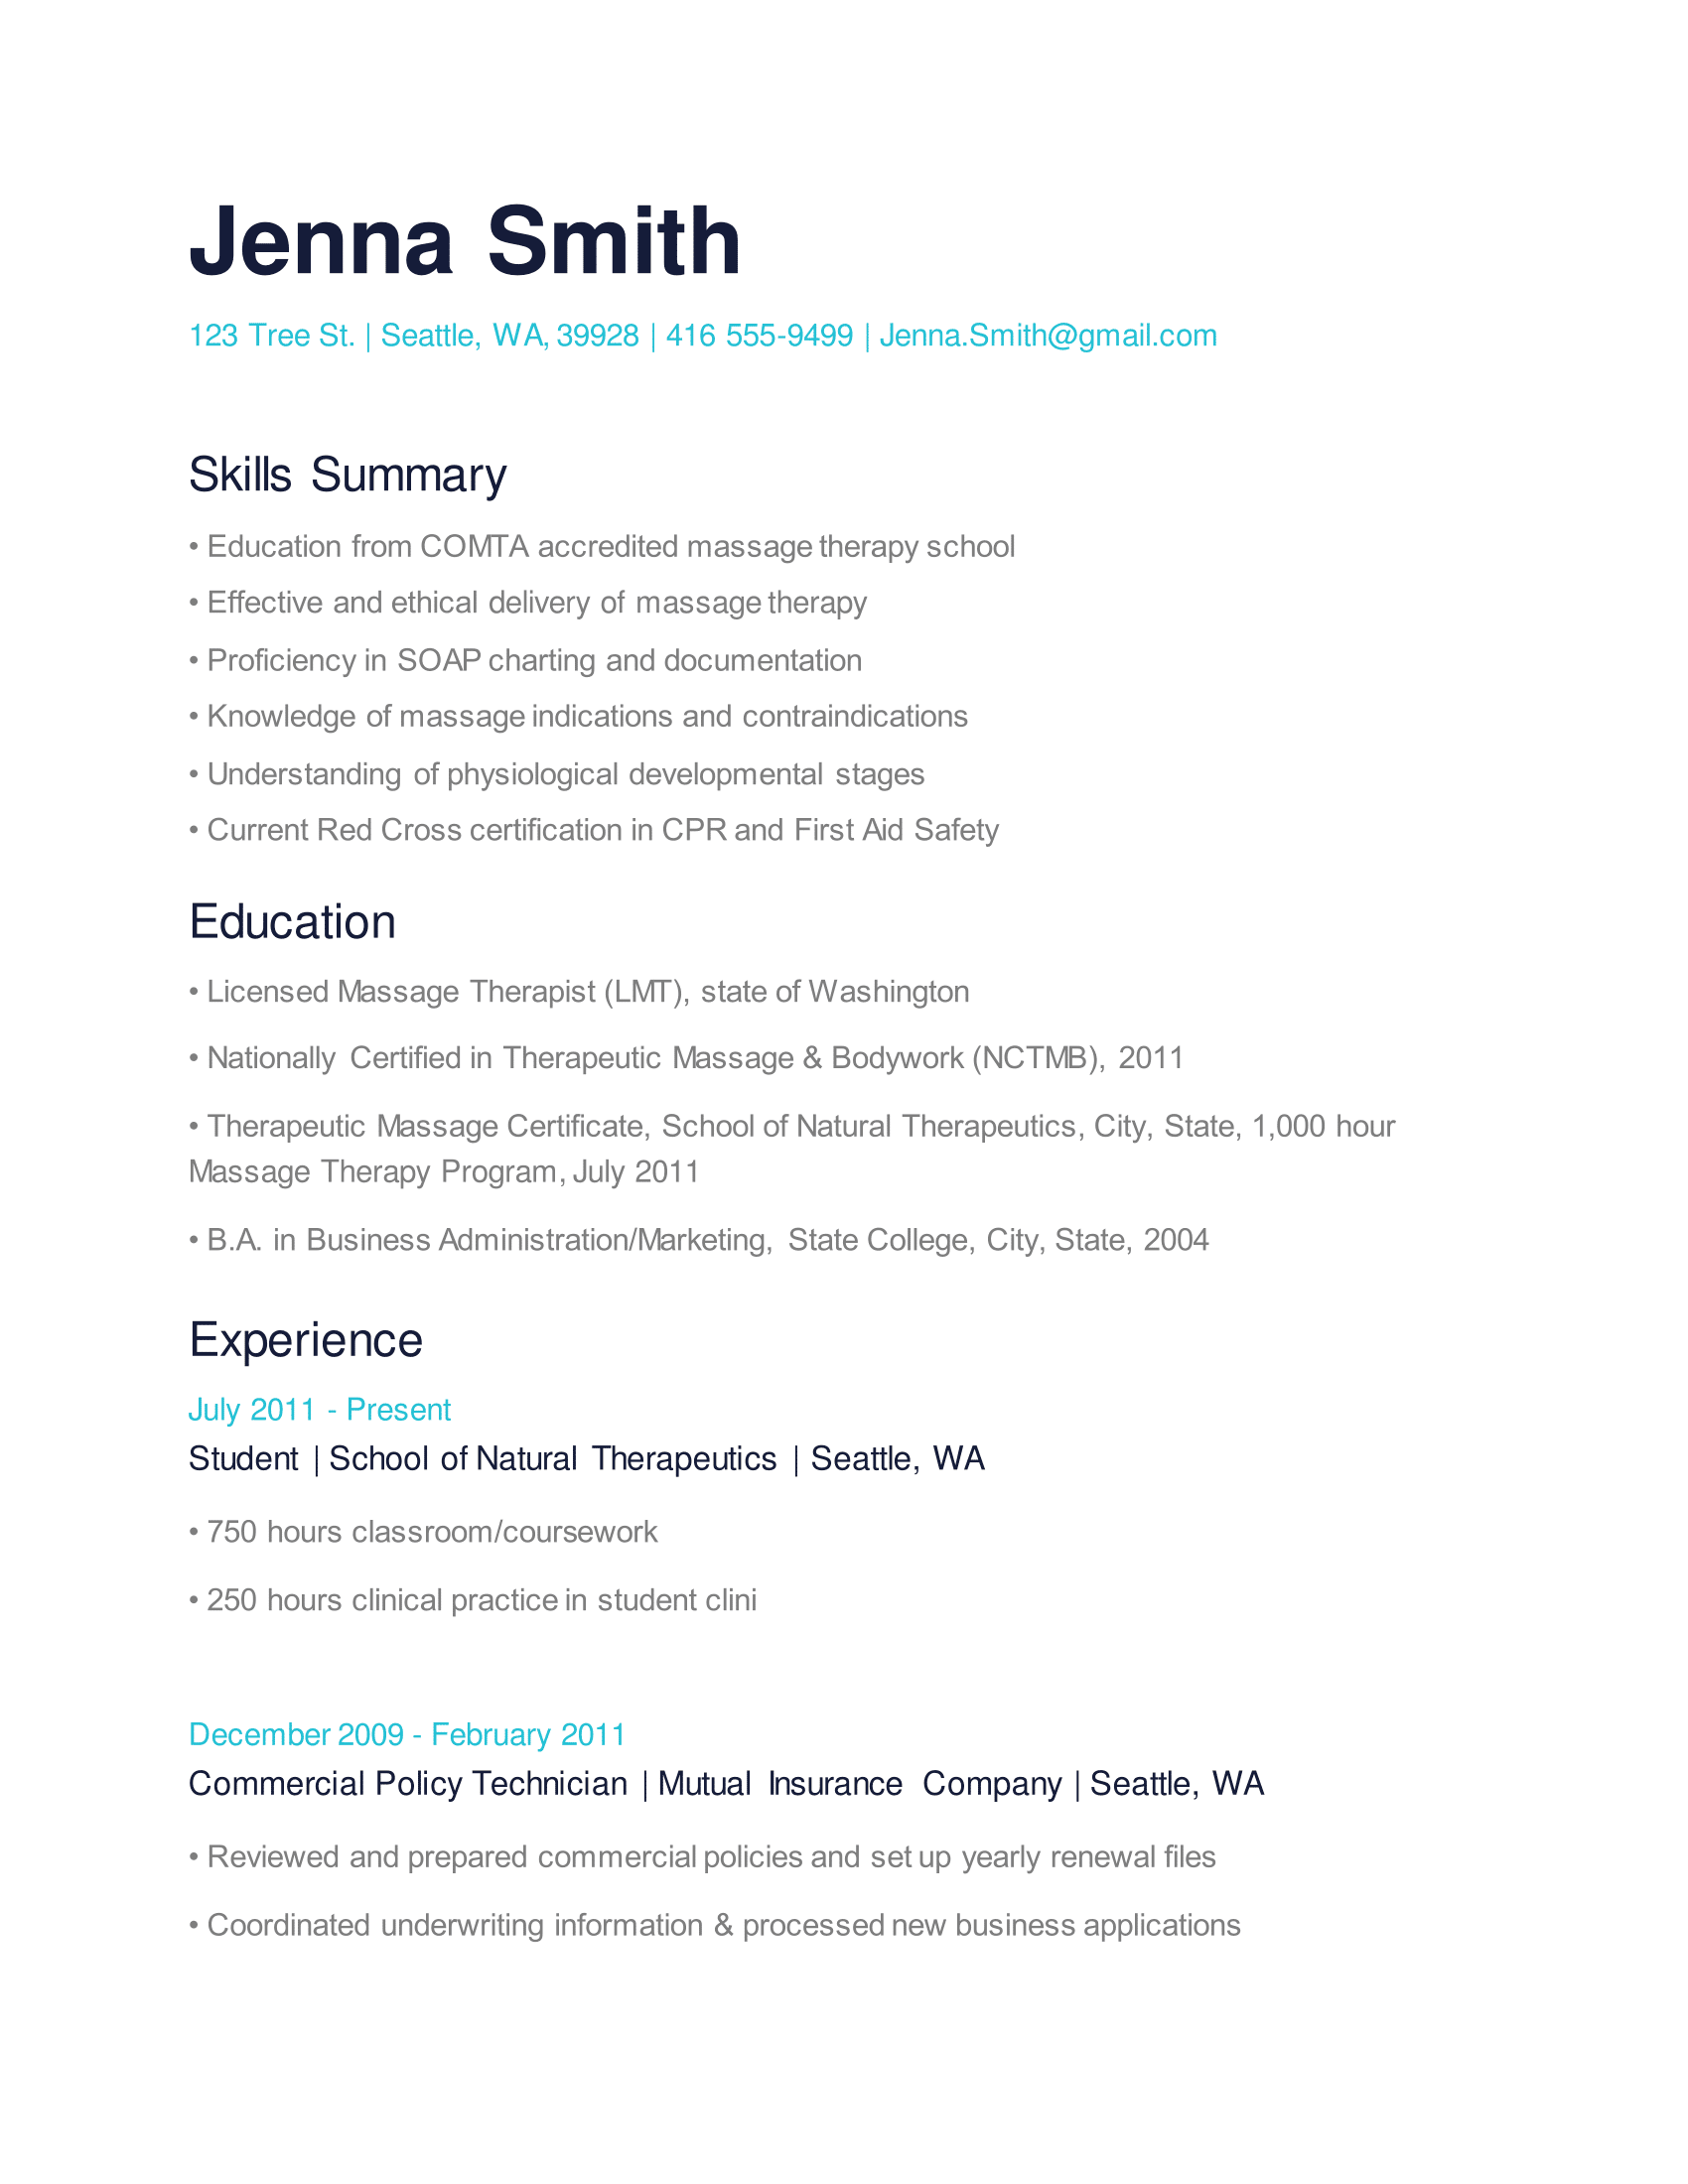 resume with photo without objective sample job experience cover ...